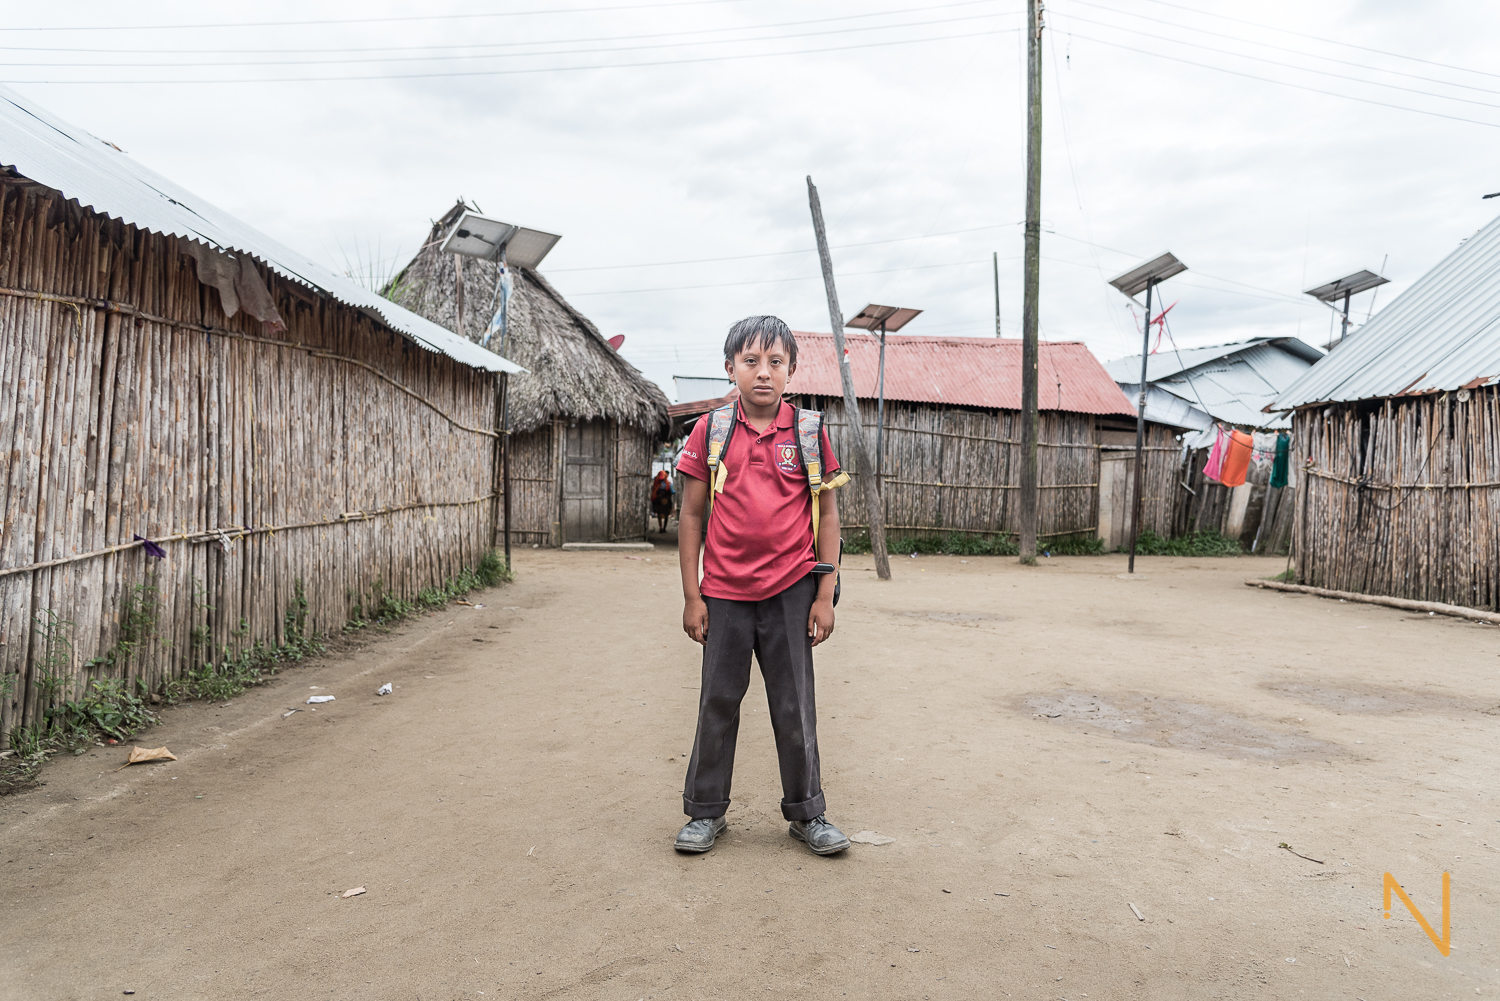 Juan Manuel, a boy of 11, before heading off to school.